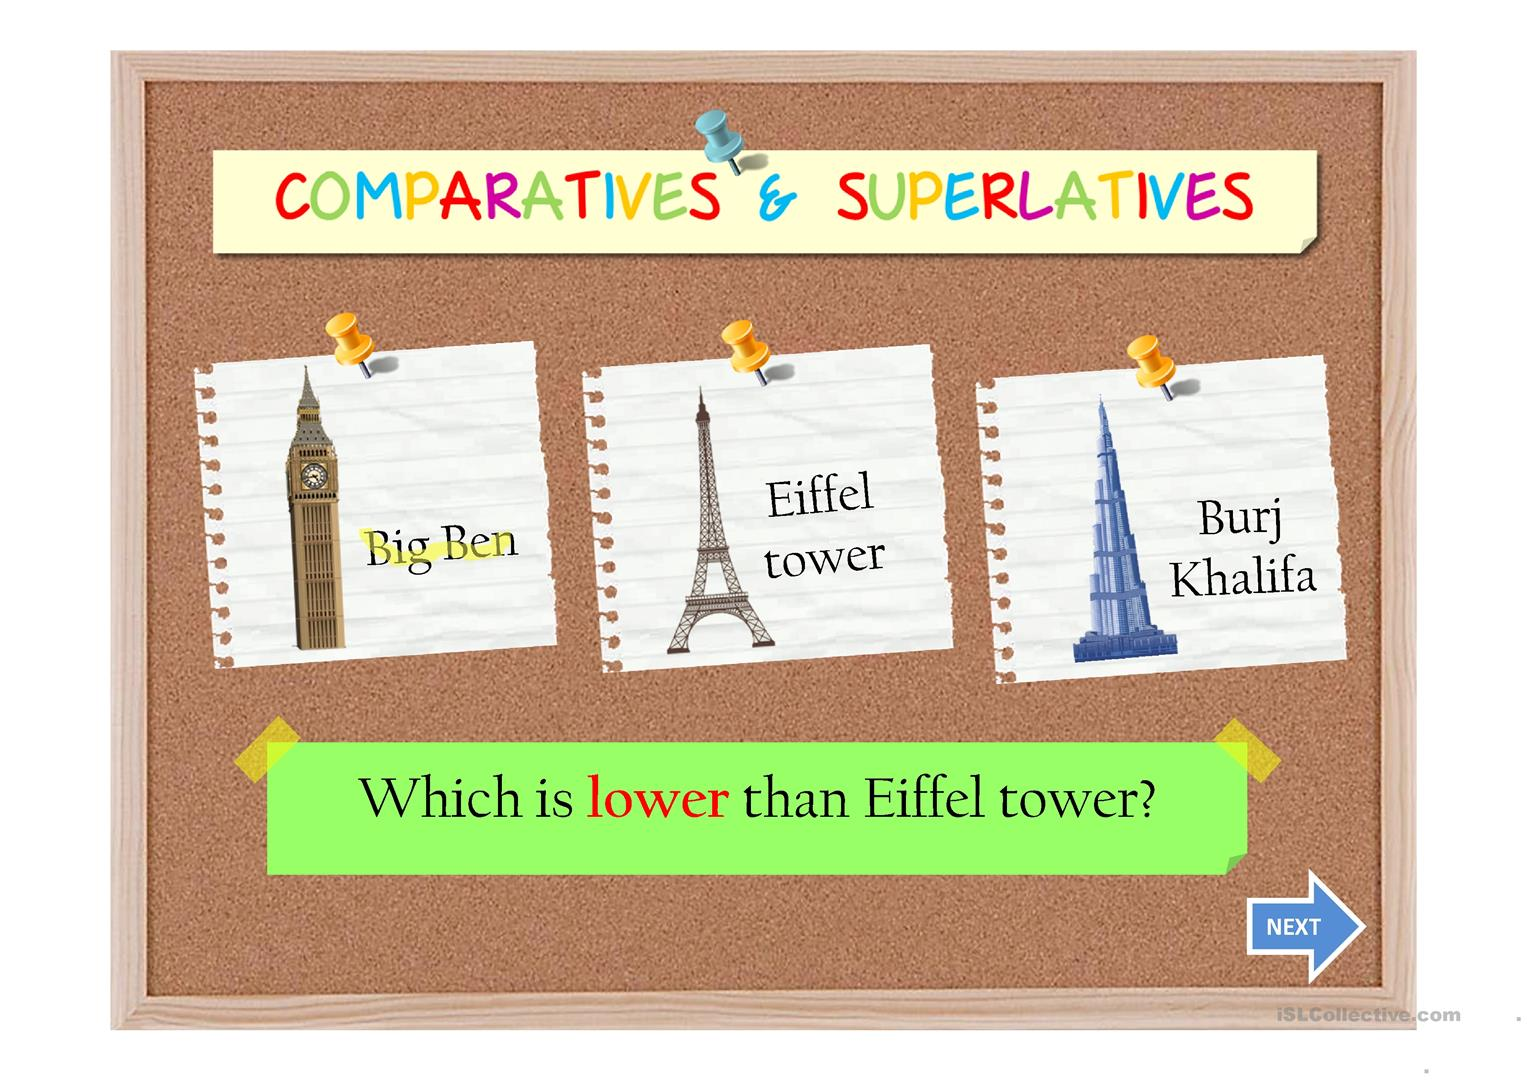 Comparatives And Superlatives Ii Worksheet